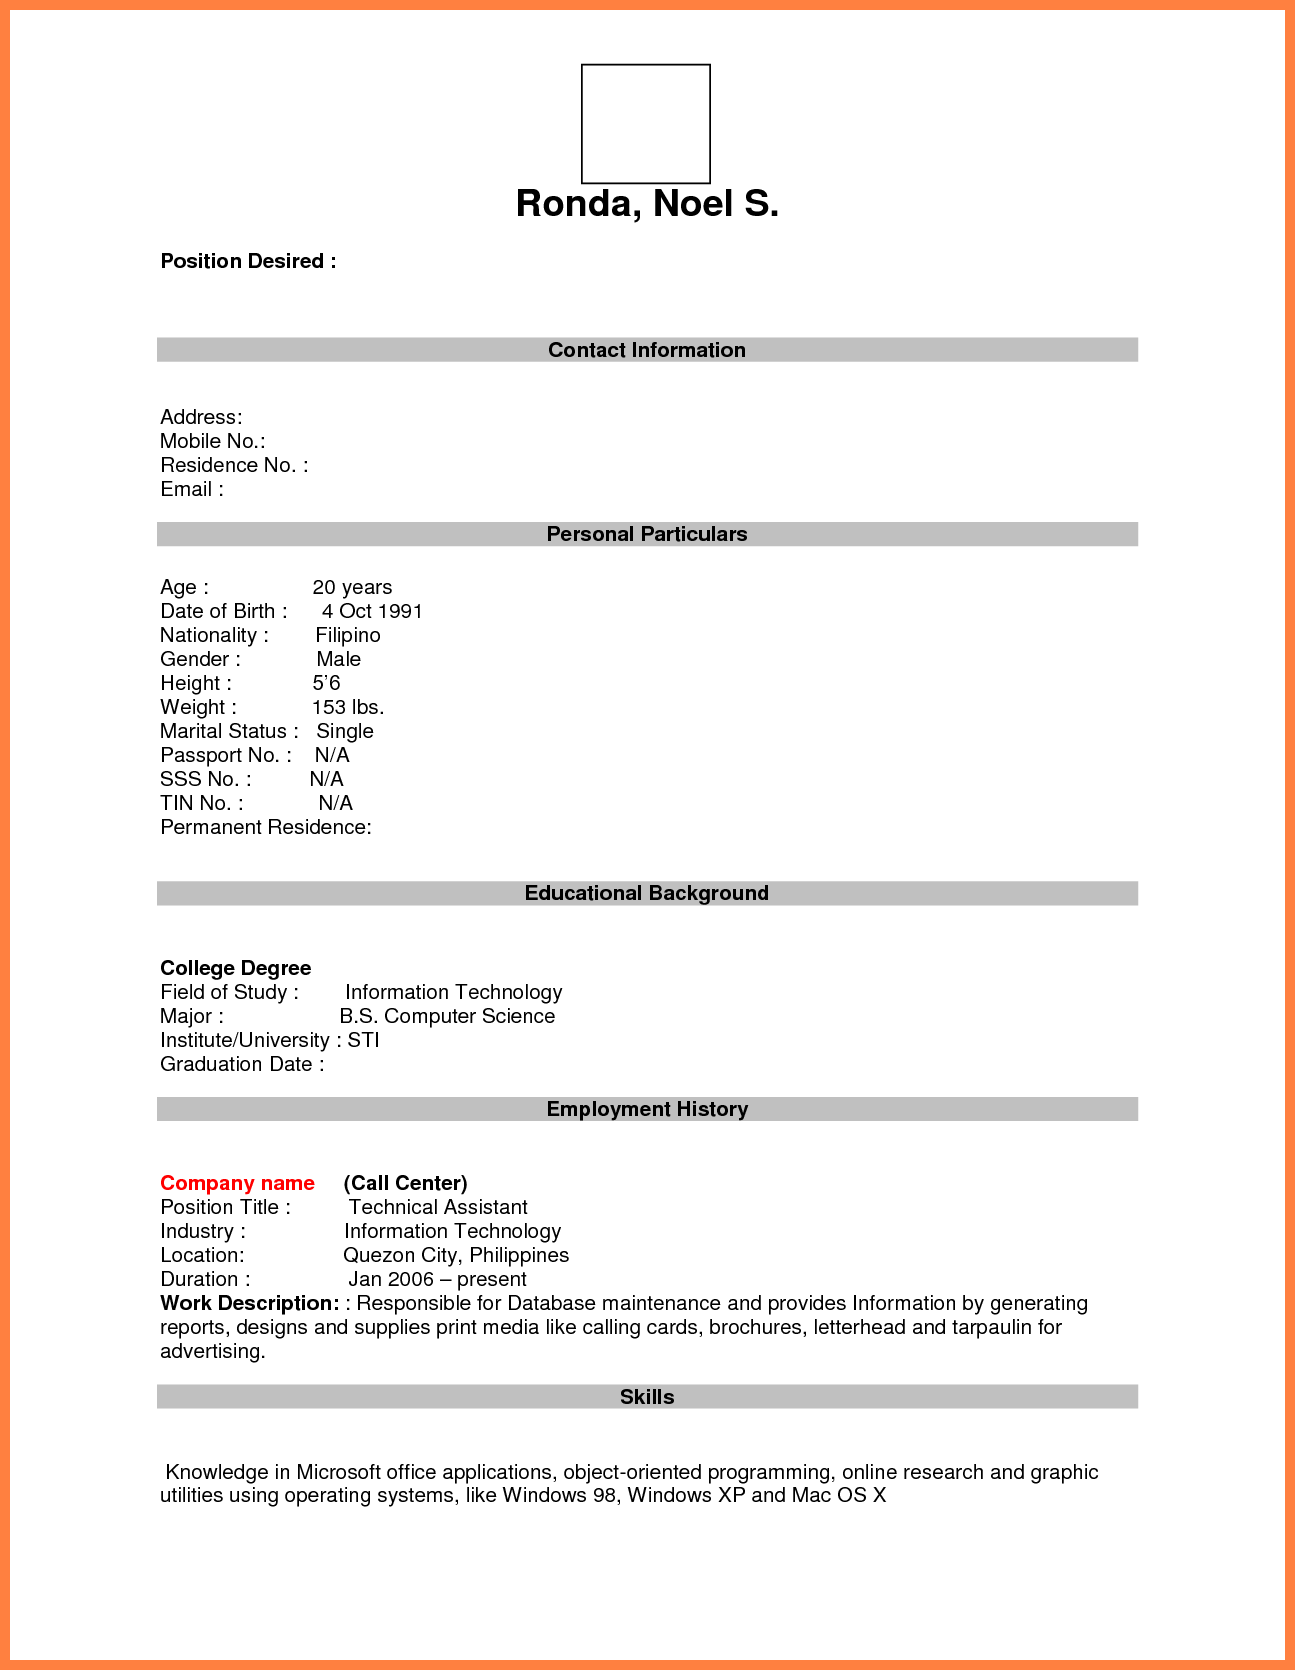 Exceptional Format For Job Application Pdf Basic Appication Letter Blank Resume Form  Bussines Proposal First Time Free With Resume Application Form